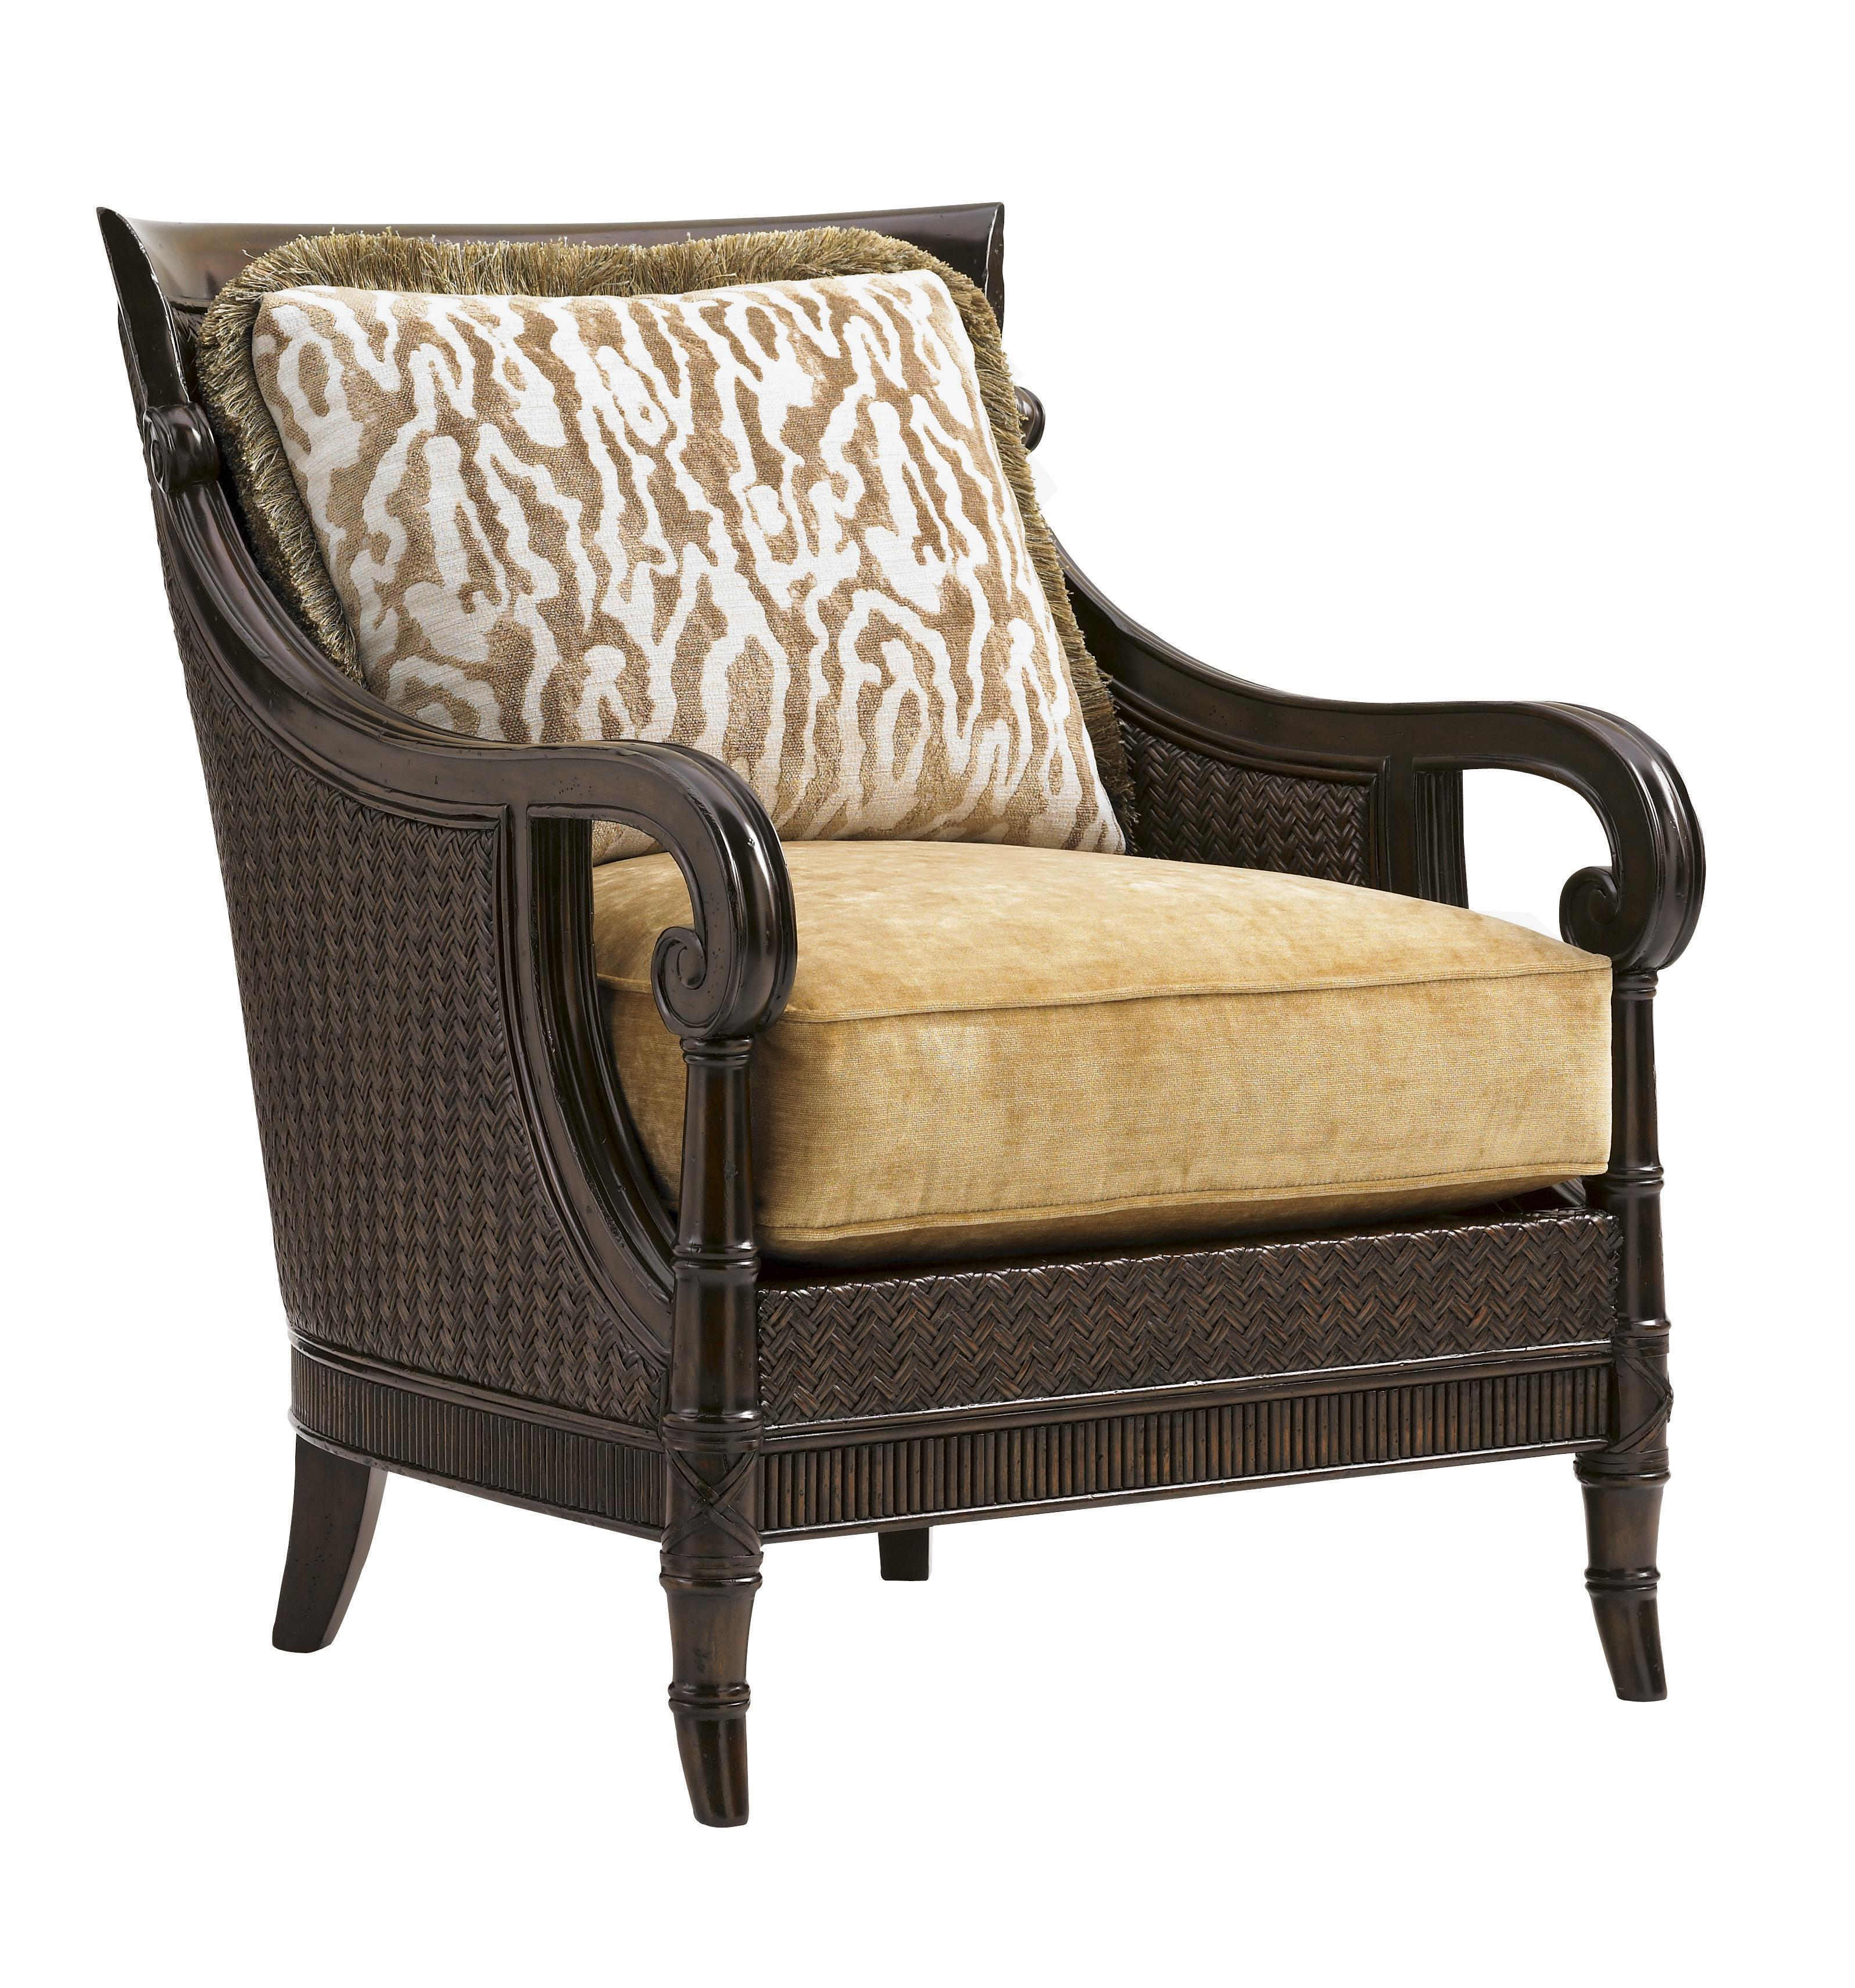 Tommy Bahama Upholstery Stafford Chair by Tommy Bahama Home at Baer's Furniture